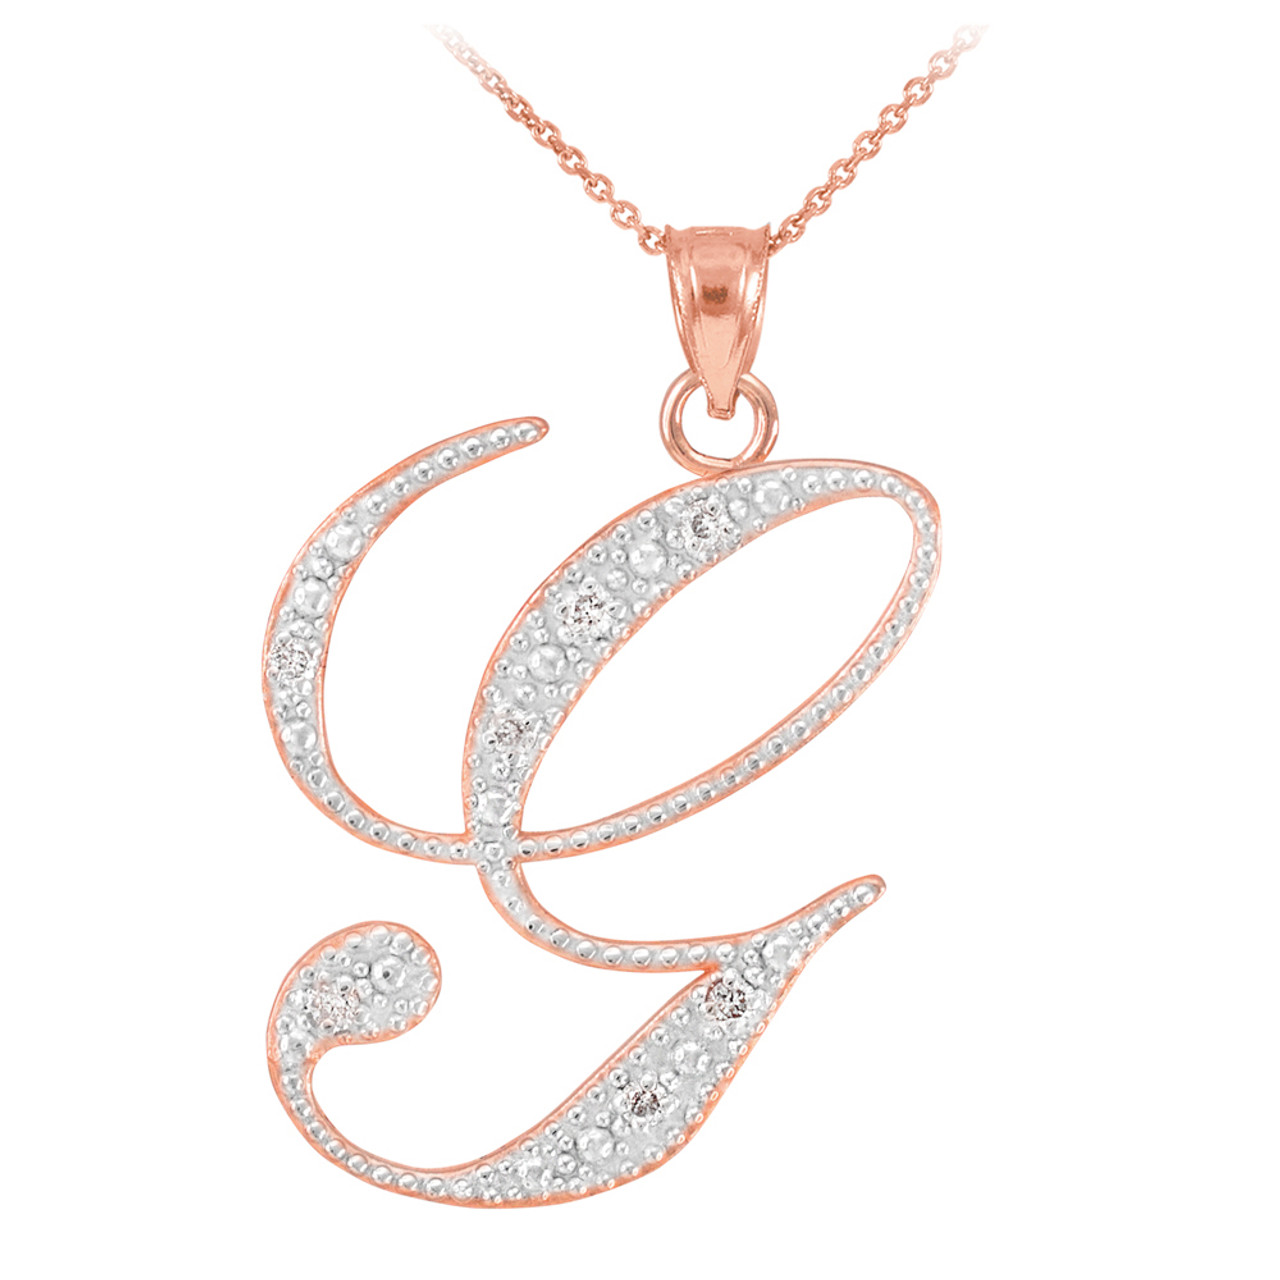 fashionology next product silver necklaces letter previous necklace jewellery lovelings